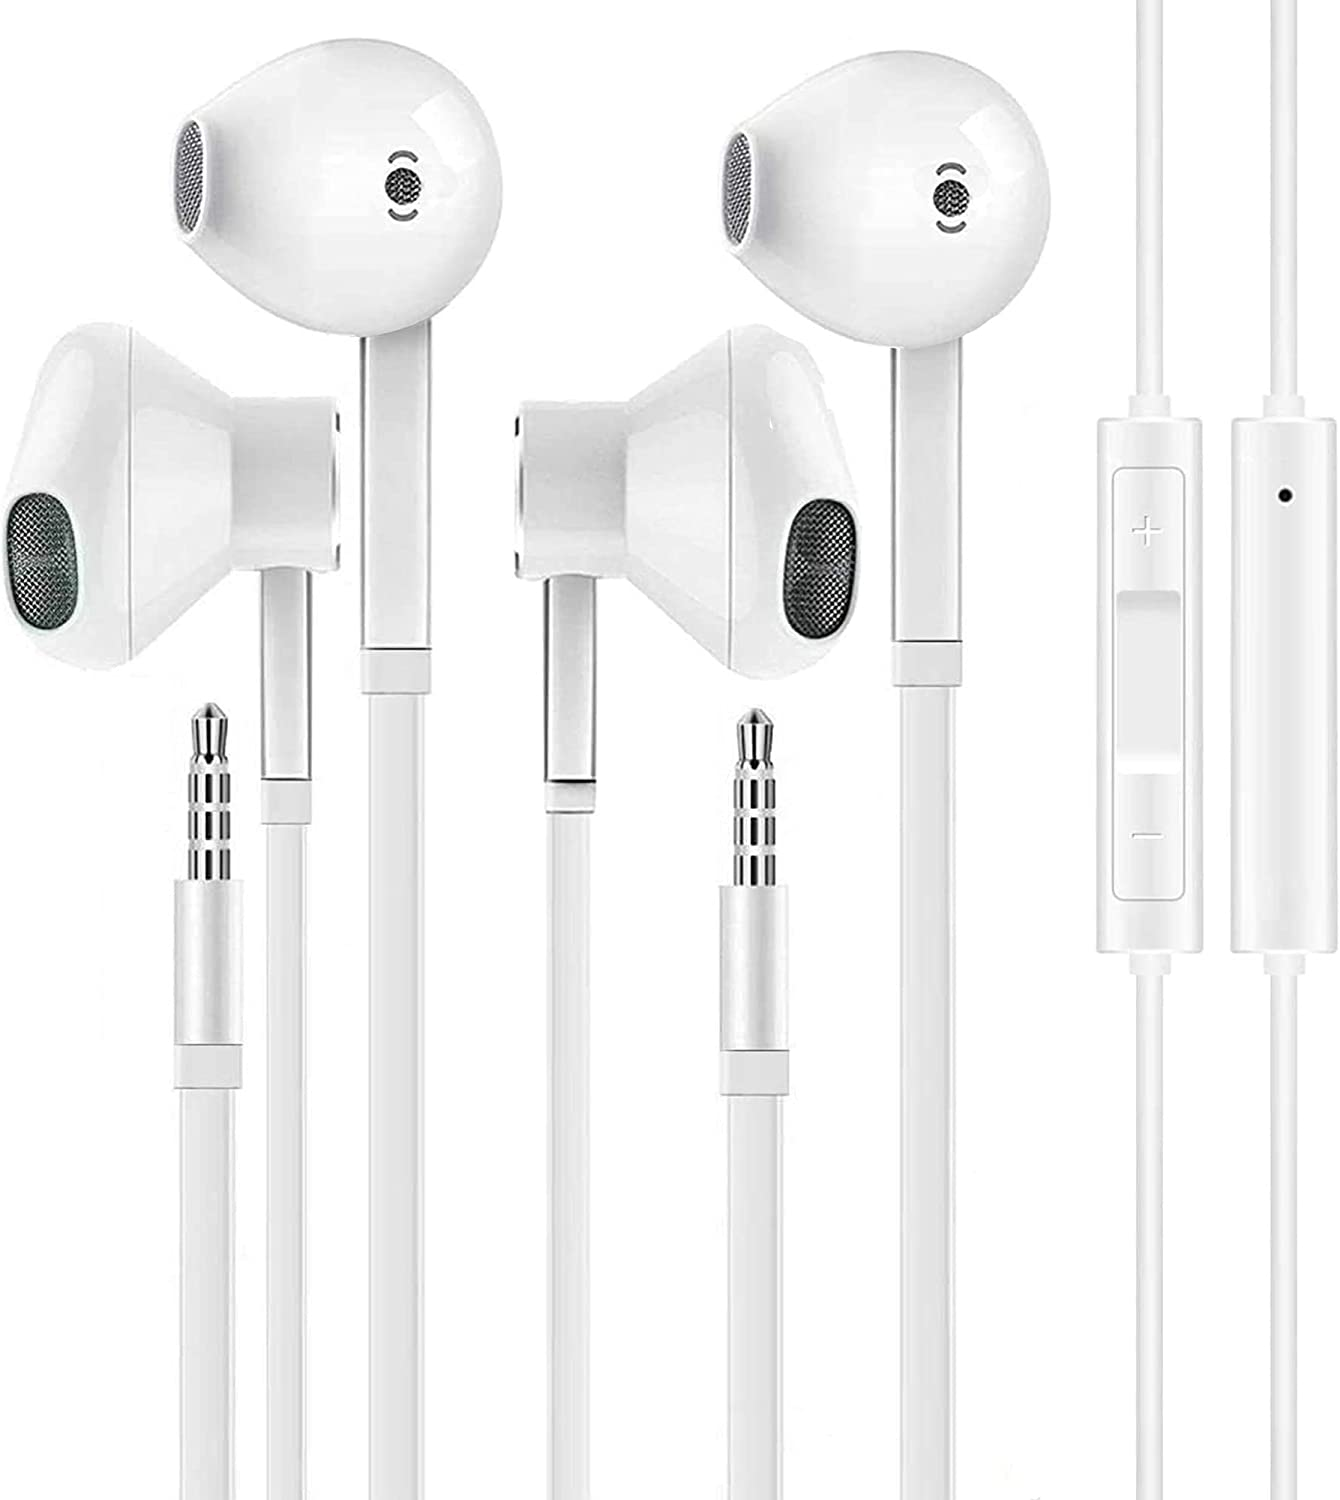 2 Pack Fonemax Aux Earbuds Earphones 3.5mm Wired Headphones Noise Isolating Earphones Volume Control & Built-in Microphone Compatible with iPhone 6s plus 5s 5 iPad S10 Android All 3.5 mm Audio Devices